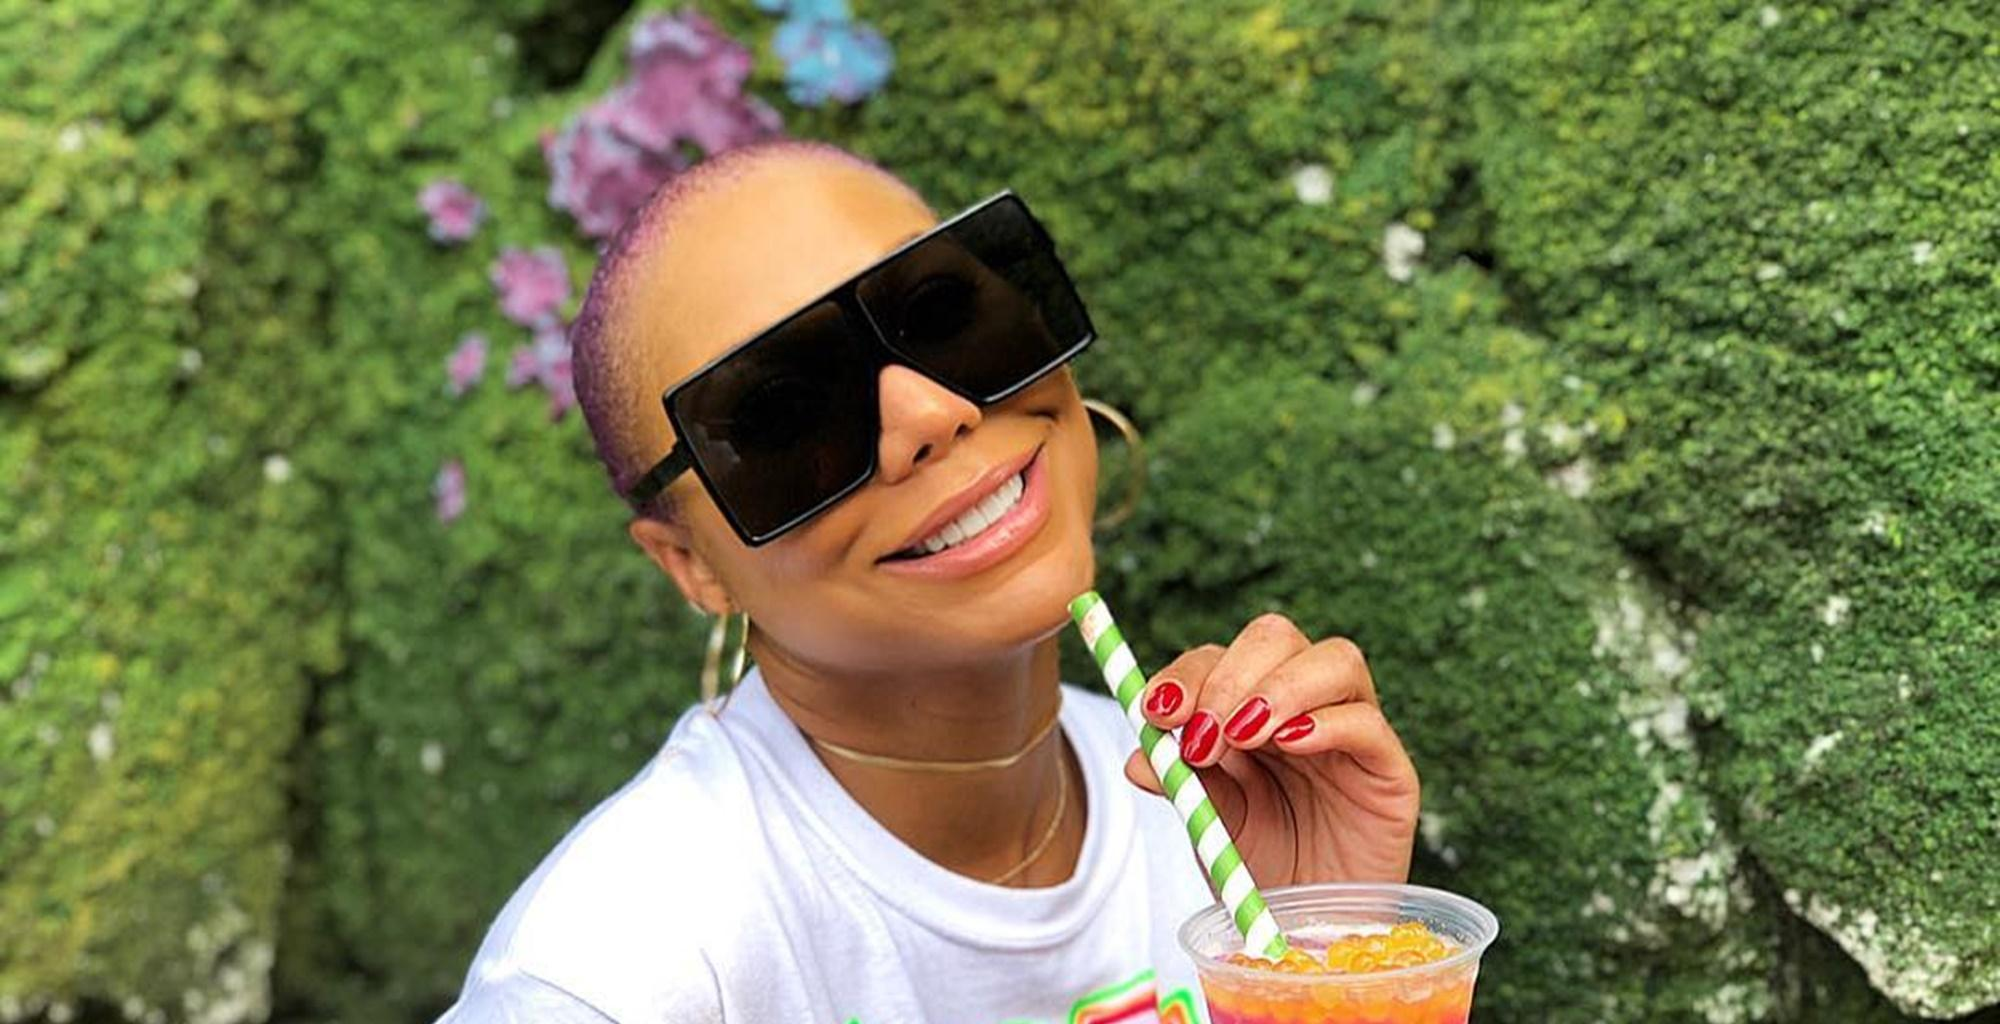 Tamar Braxton Wants Fans To Win With Her - Check Out Her New Message